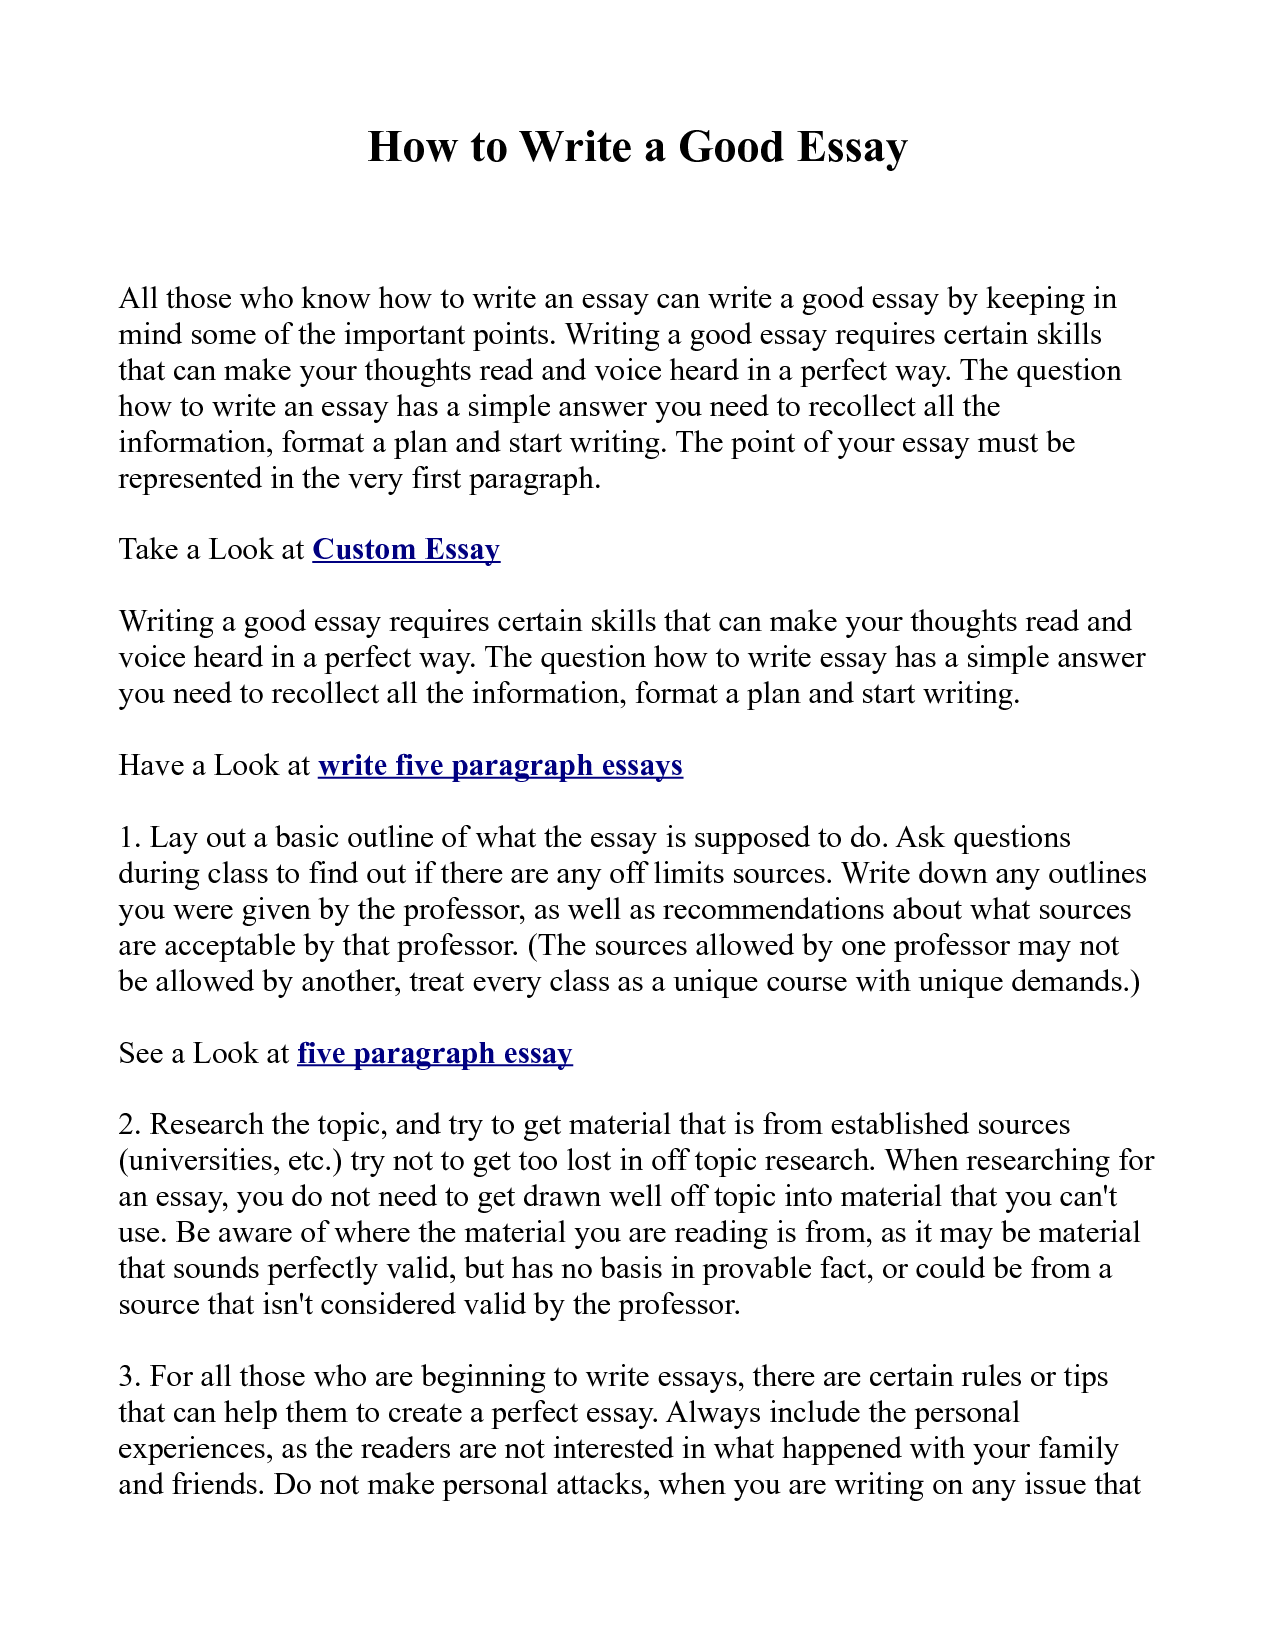 004 Exidscl How To Write Proper Essay Frightening A Good Format Successful Introduction Full